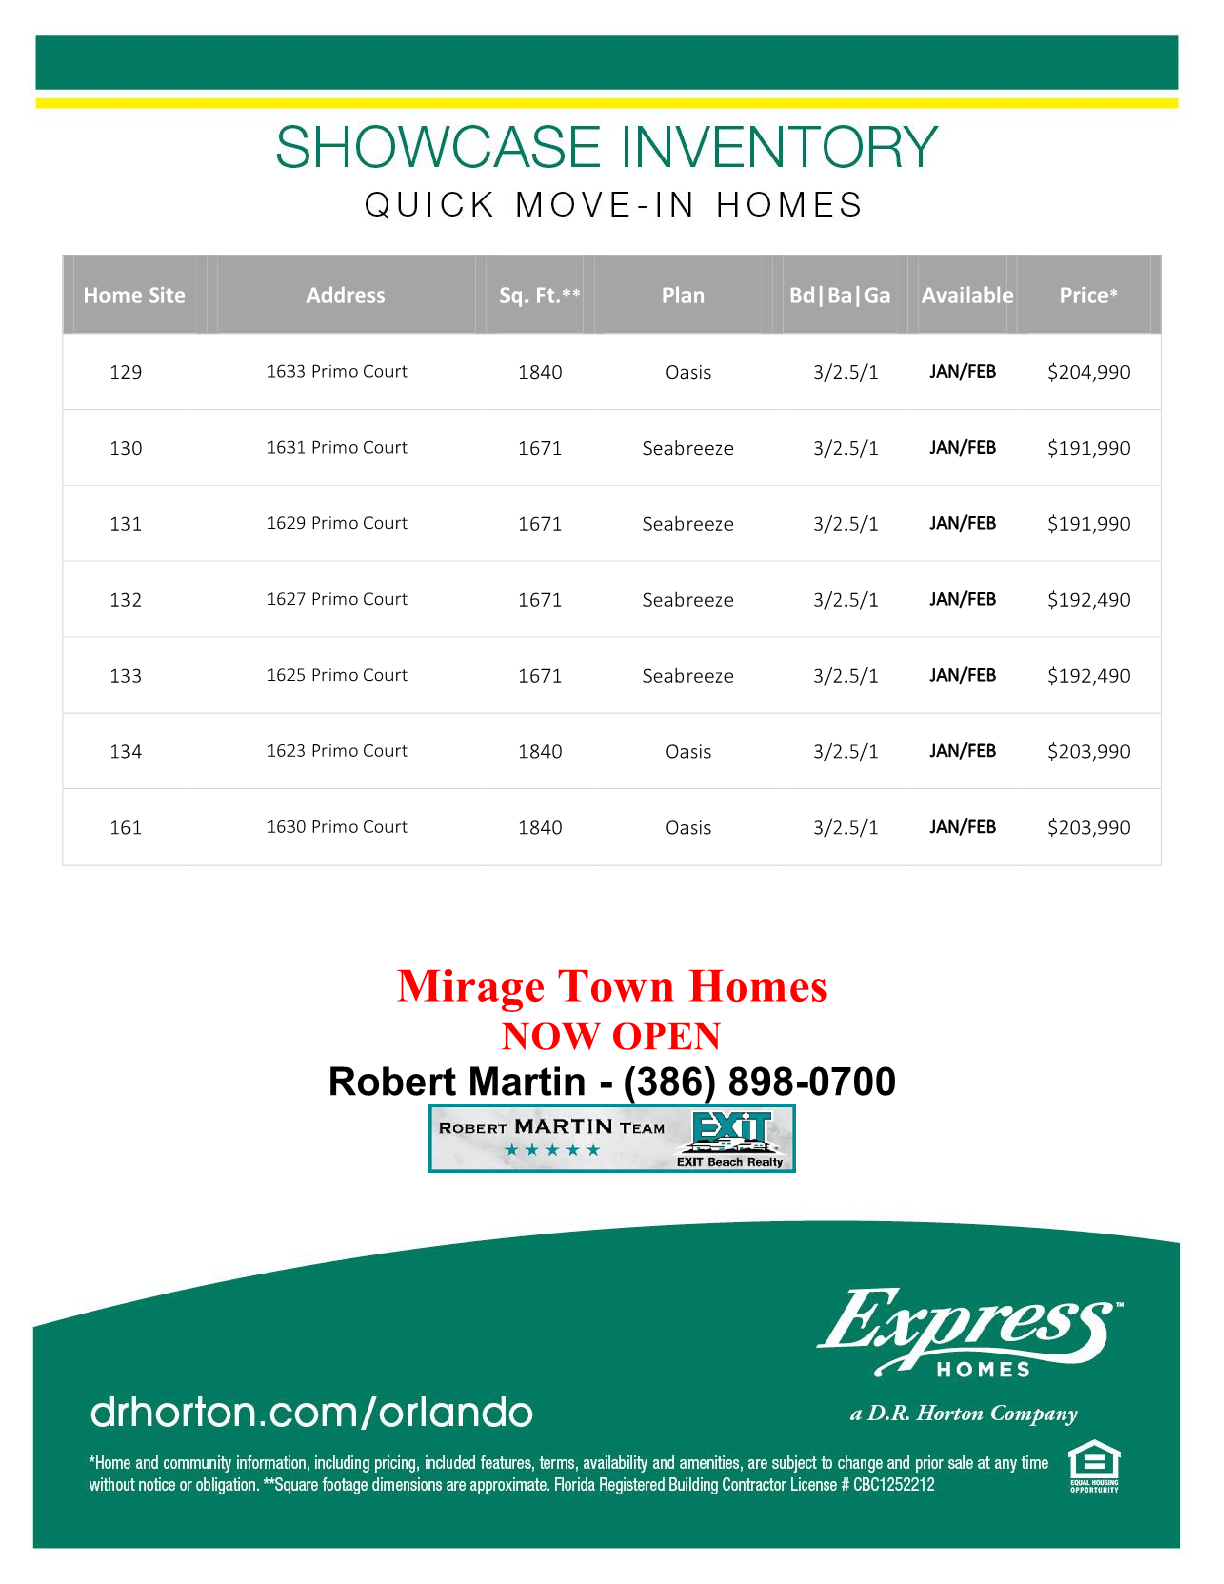 Mirage Townhomes 1.03.191.png